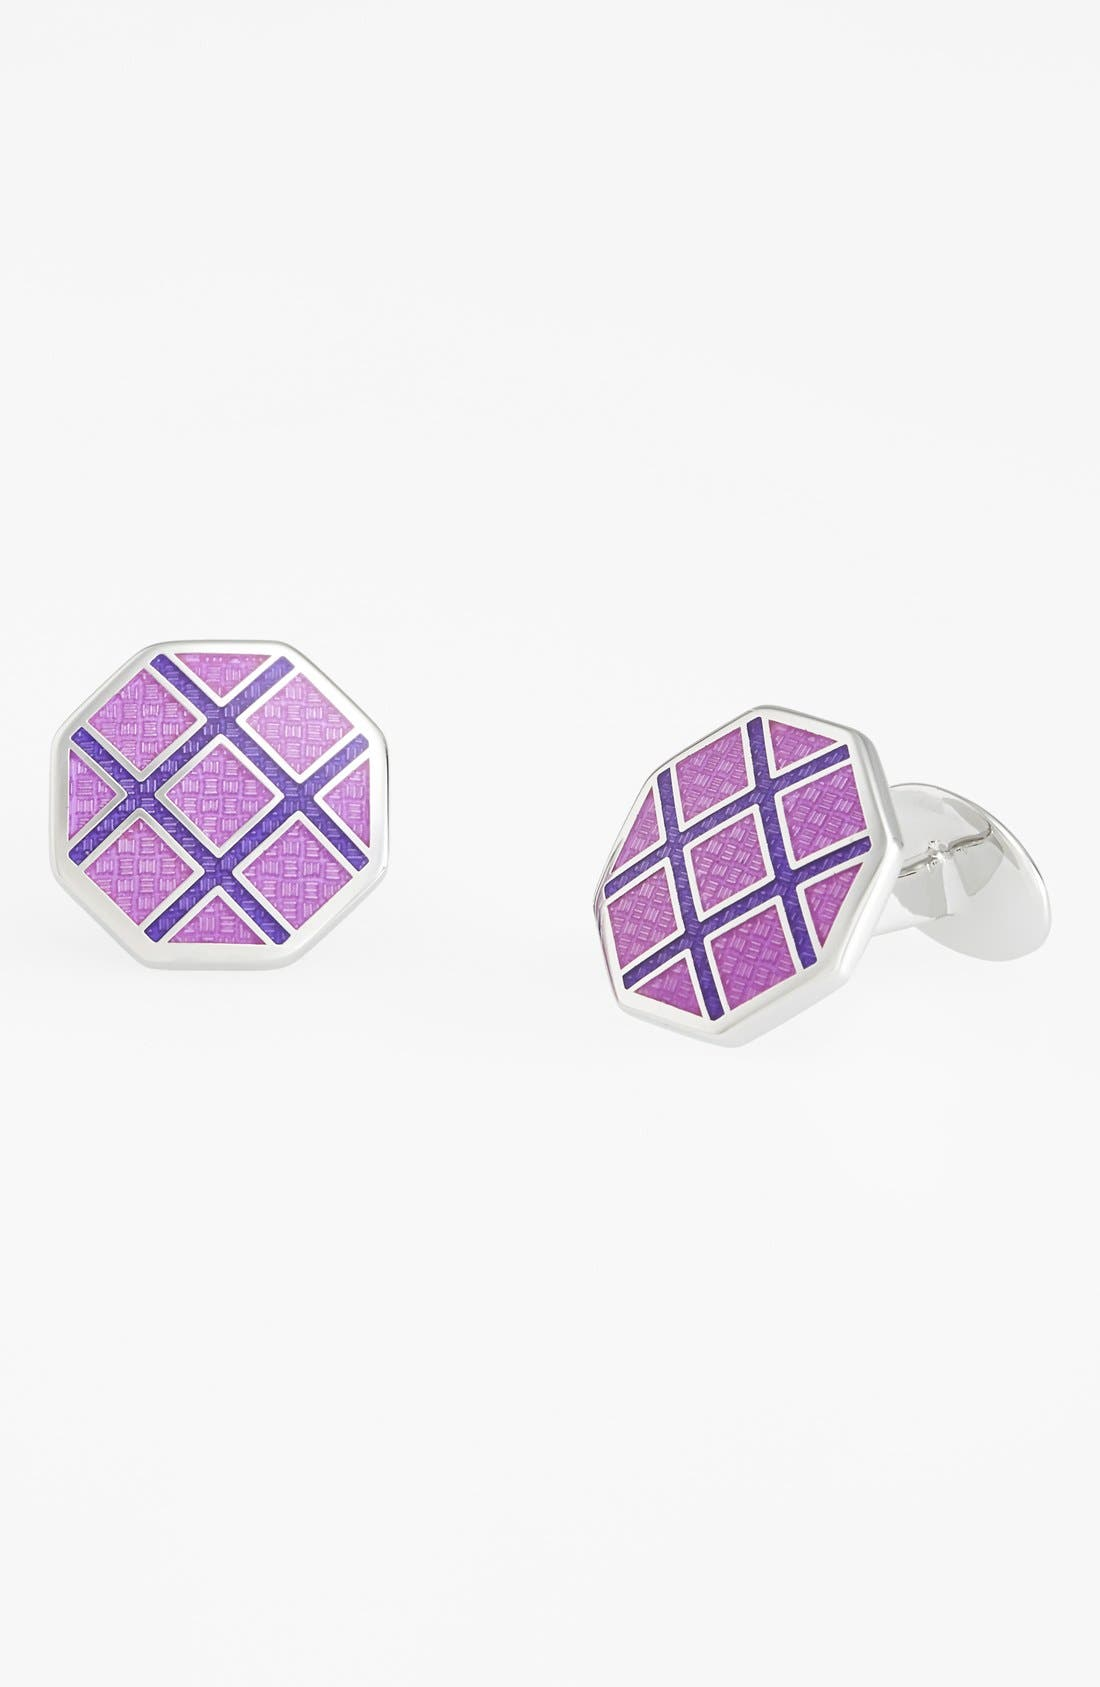 DAVID DONAHUE Octagon Cuff Links